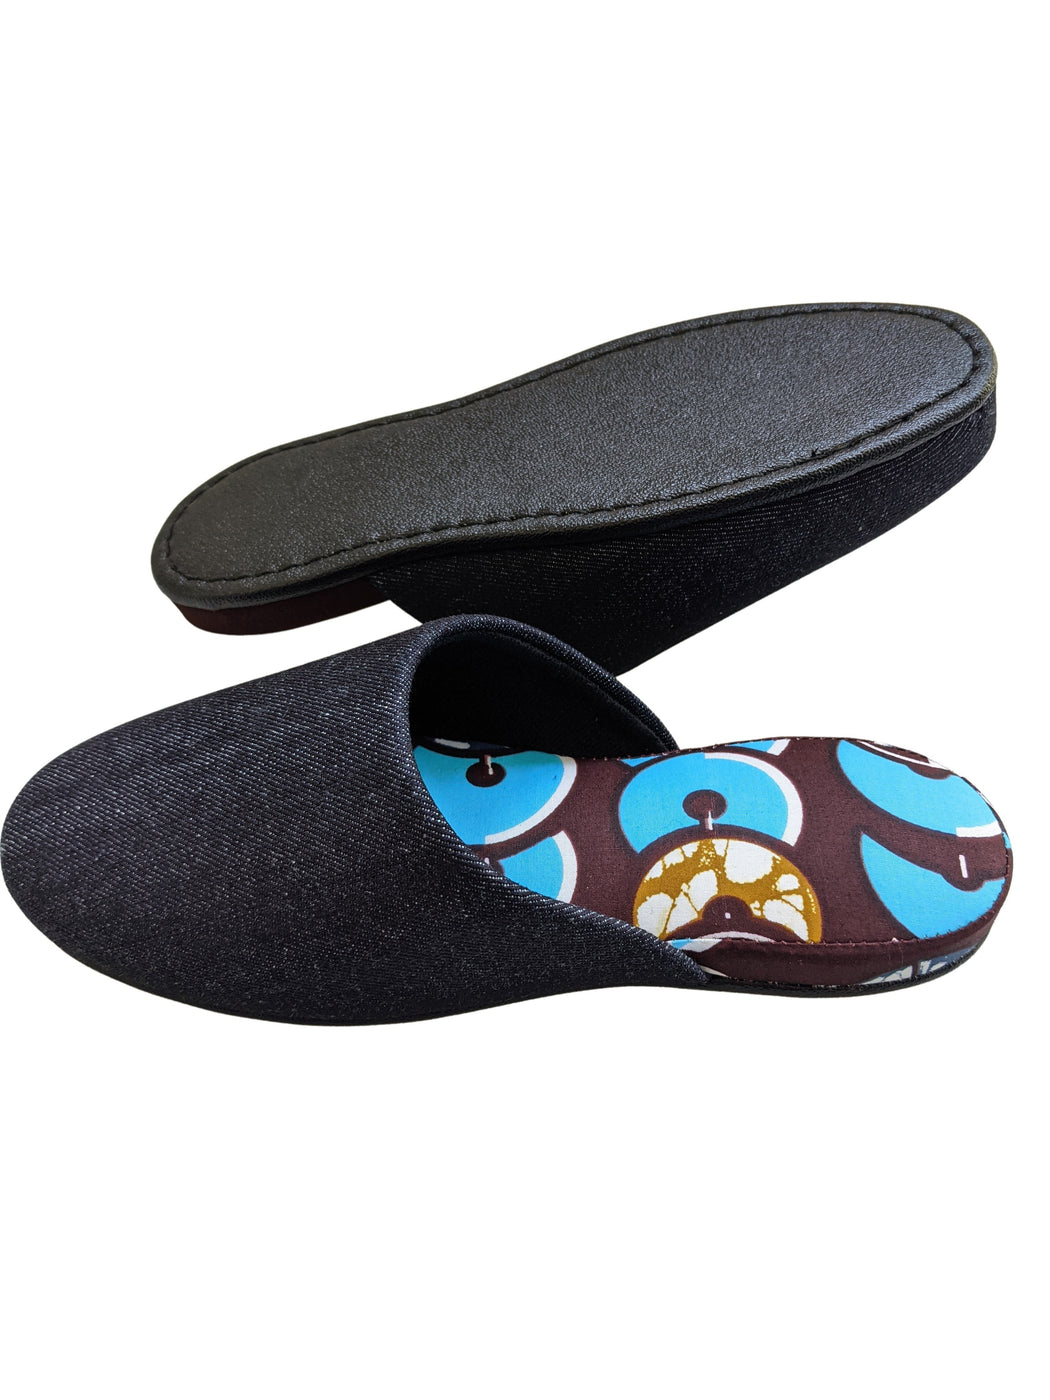 Small : Denim Mix Slippers 2021SS-07 [vinyl sole] [Size: Small]